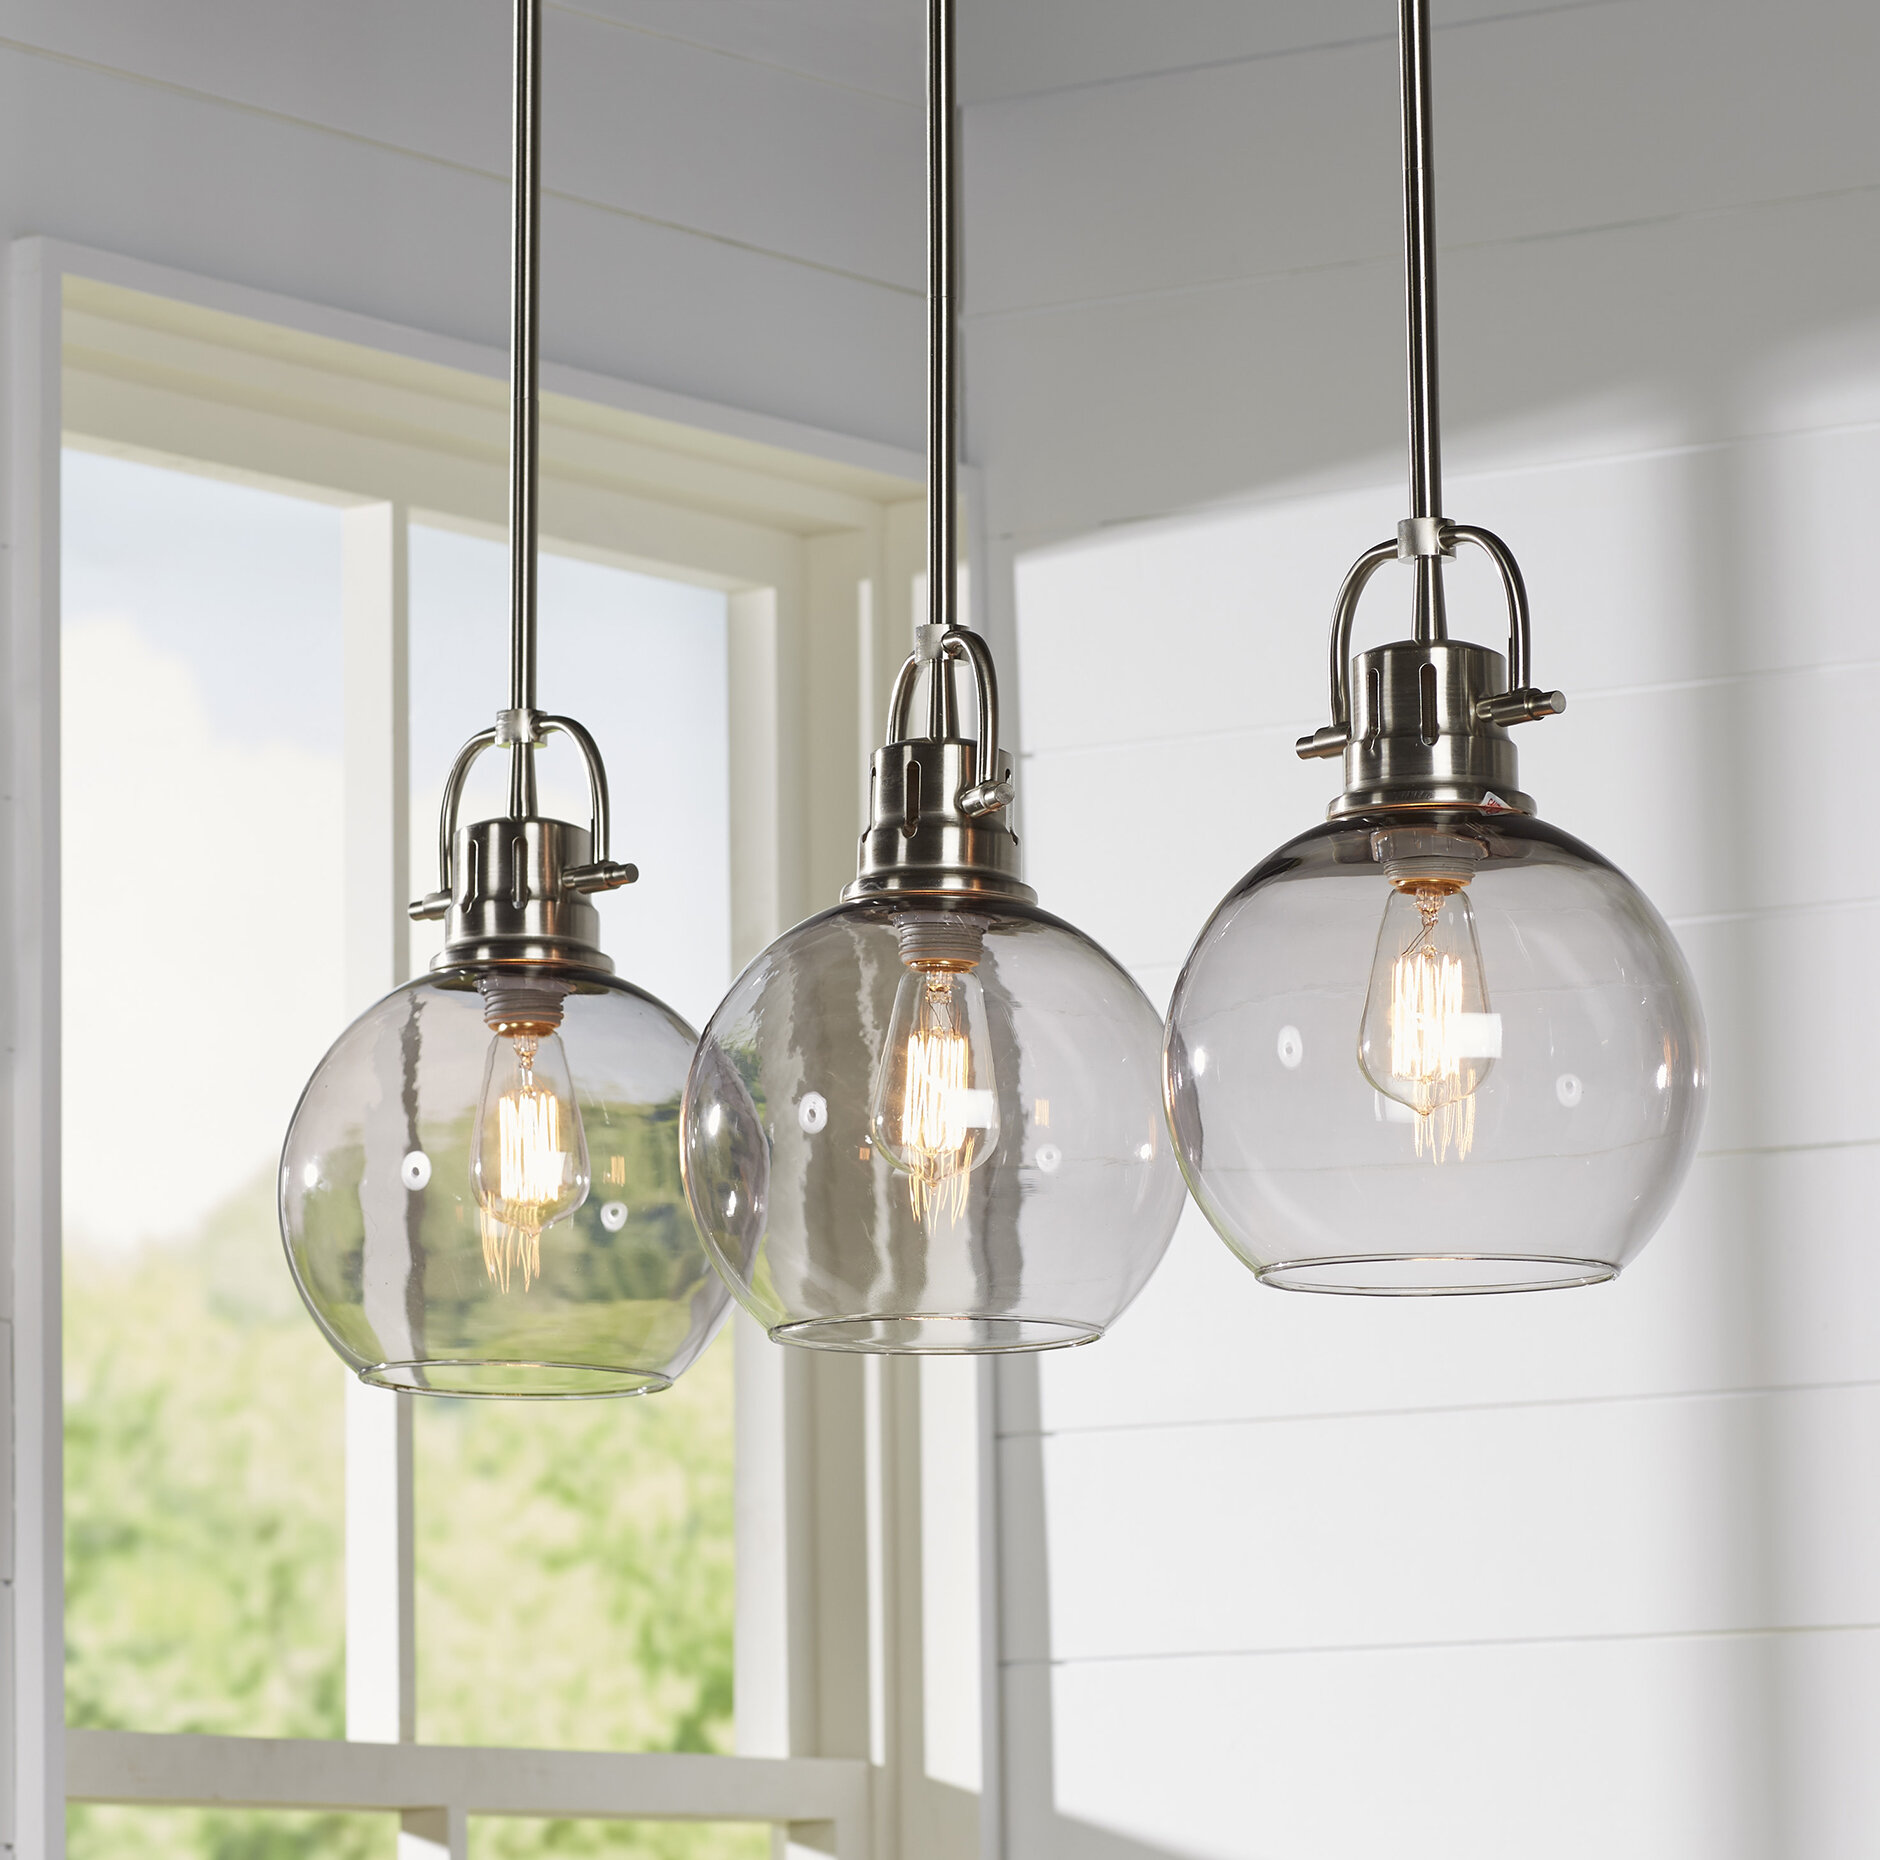 inspirations lights m kitchen pendant of lighting contemporary